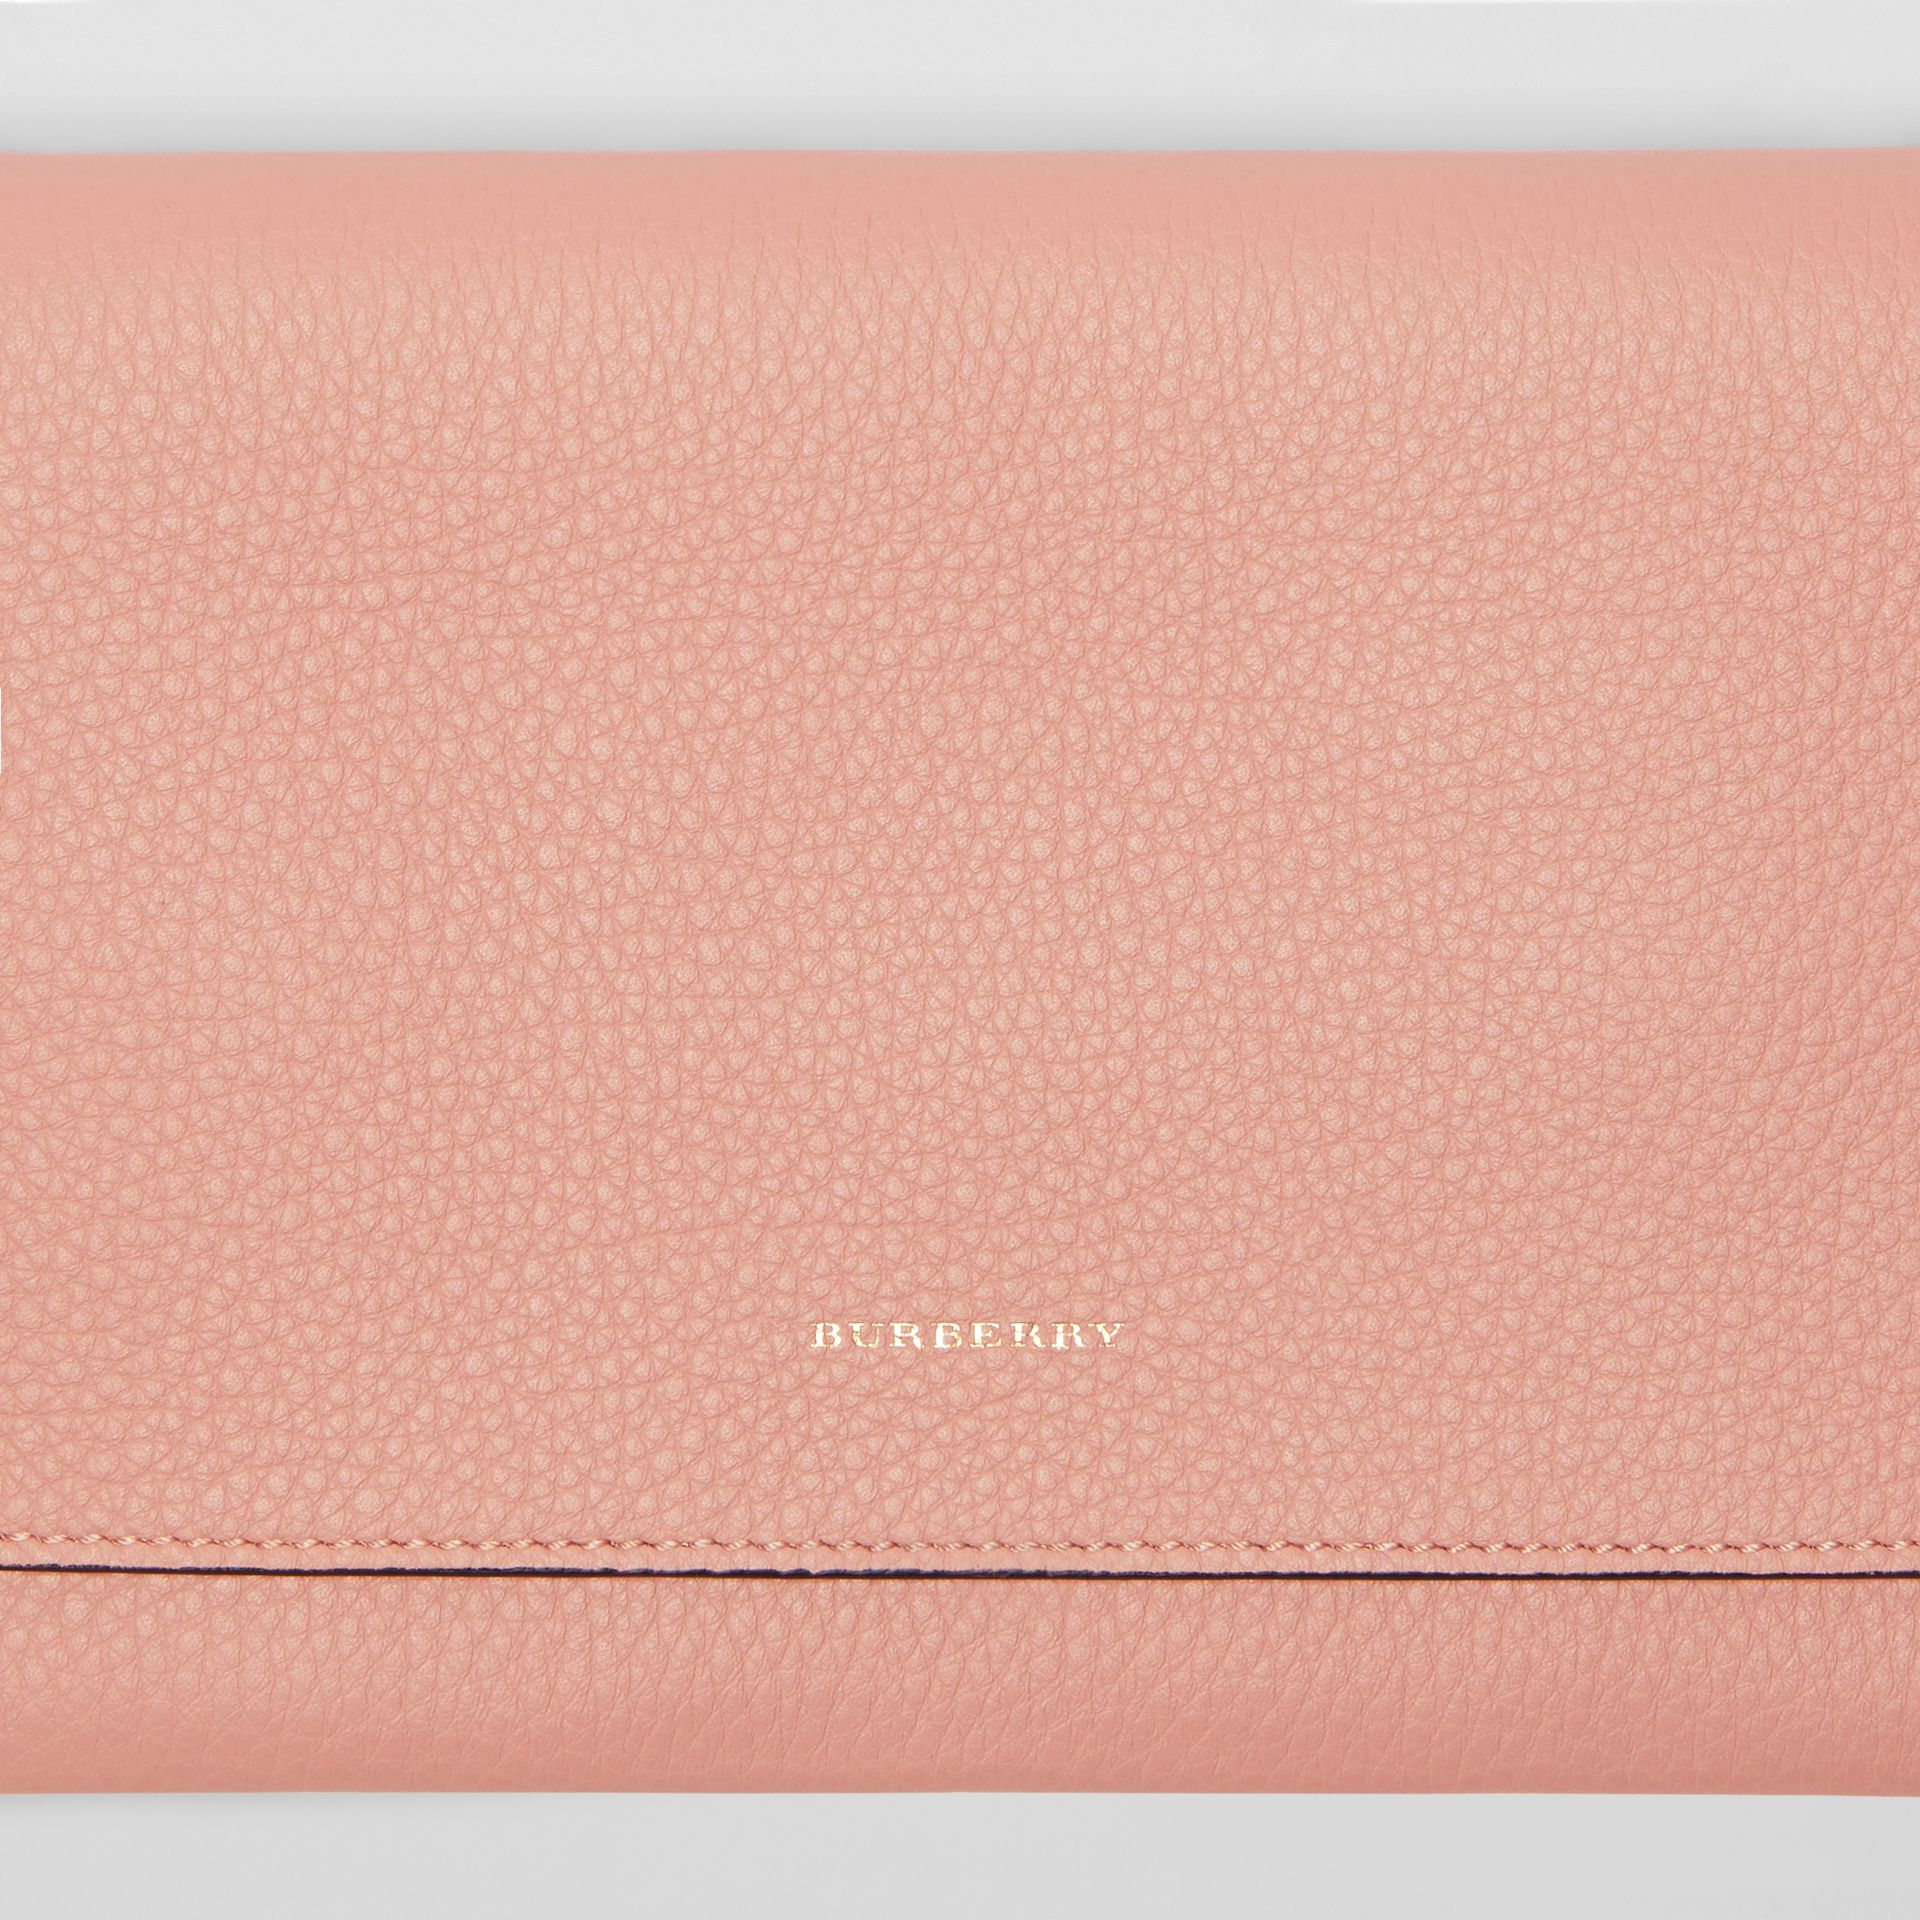 Two-tone Leather Wristlet Clutch in Ash Rose - Women | Burberry - gallery image 1